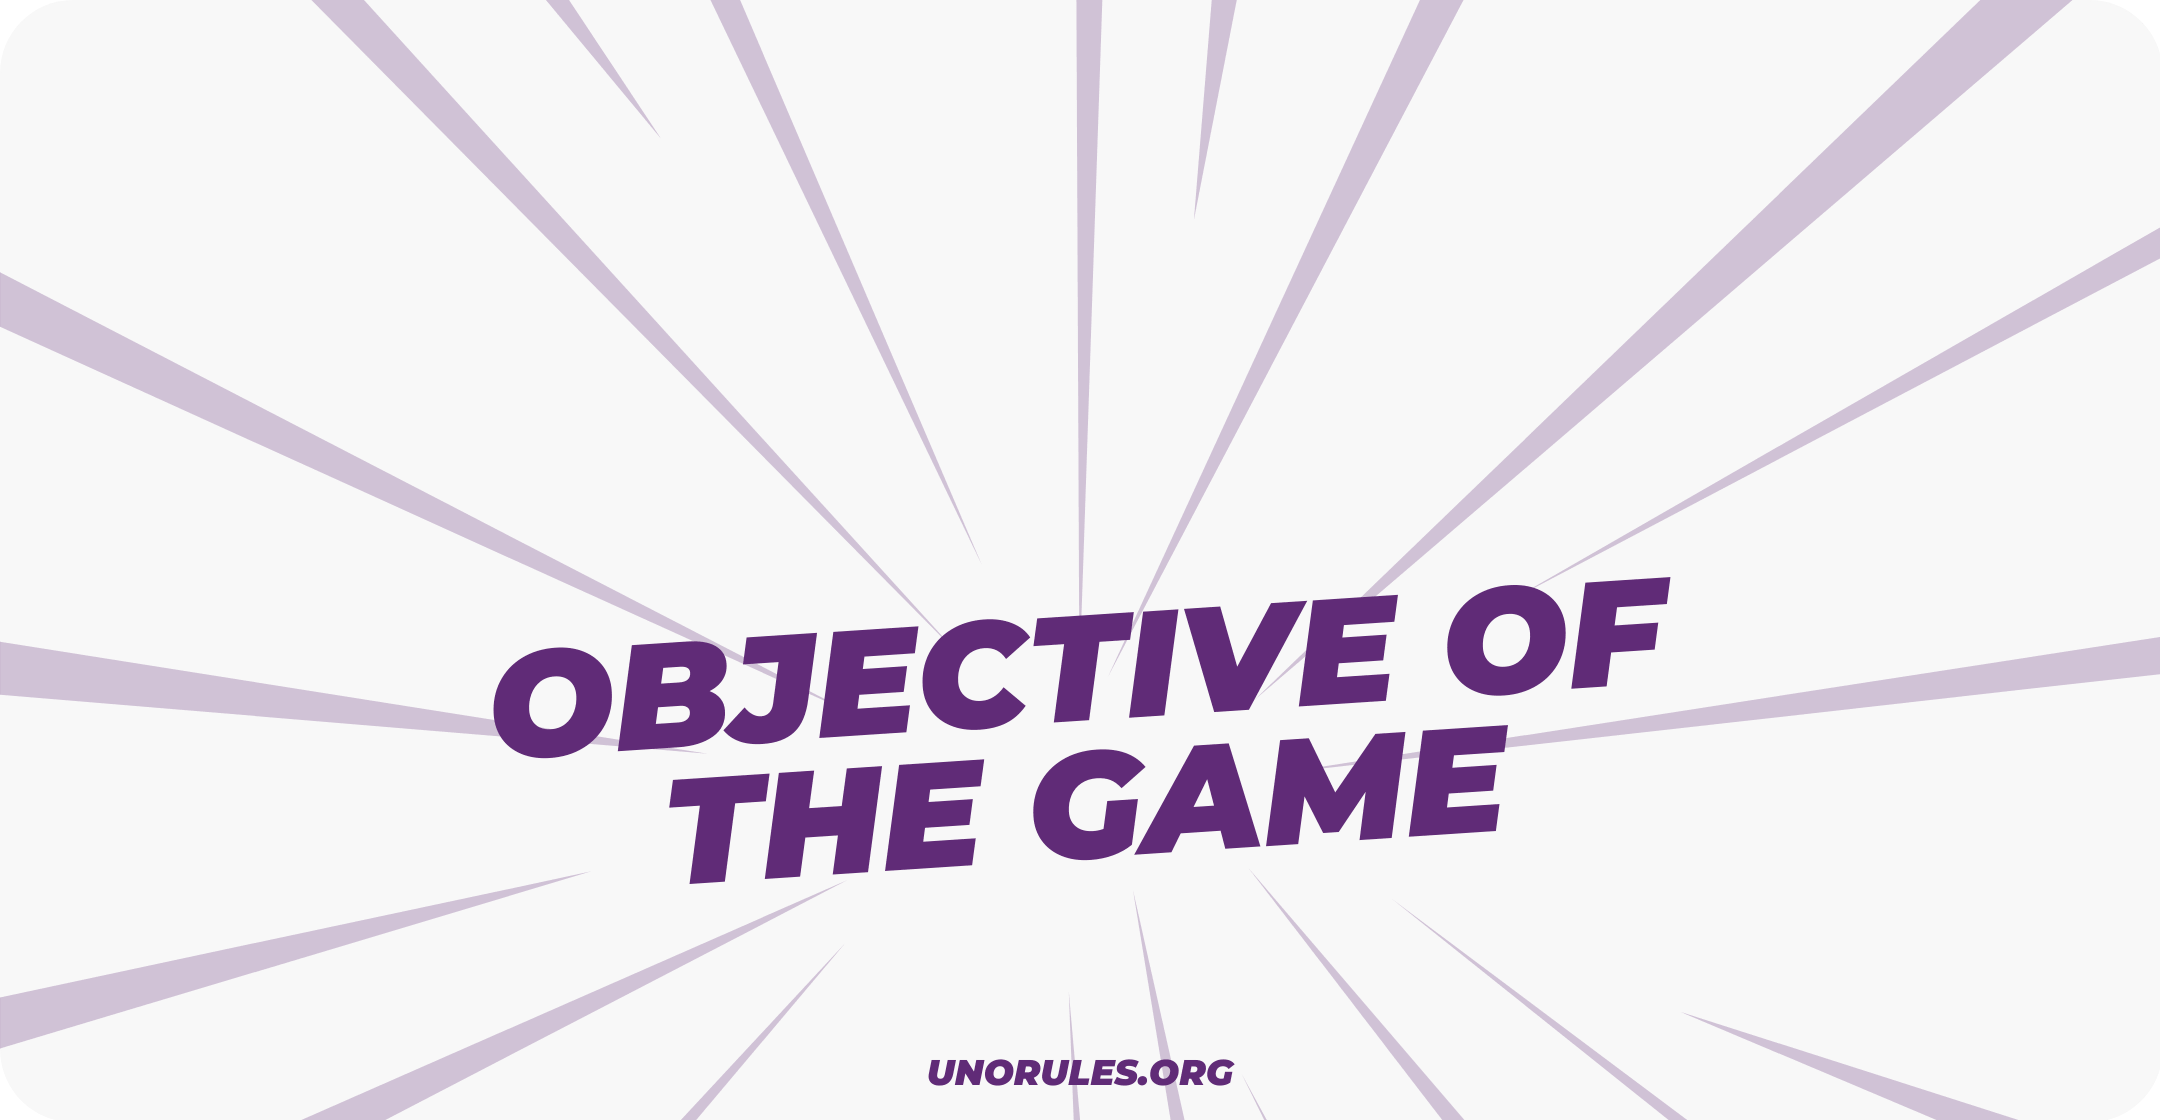 Objective of the game